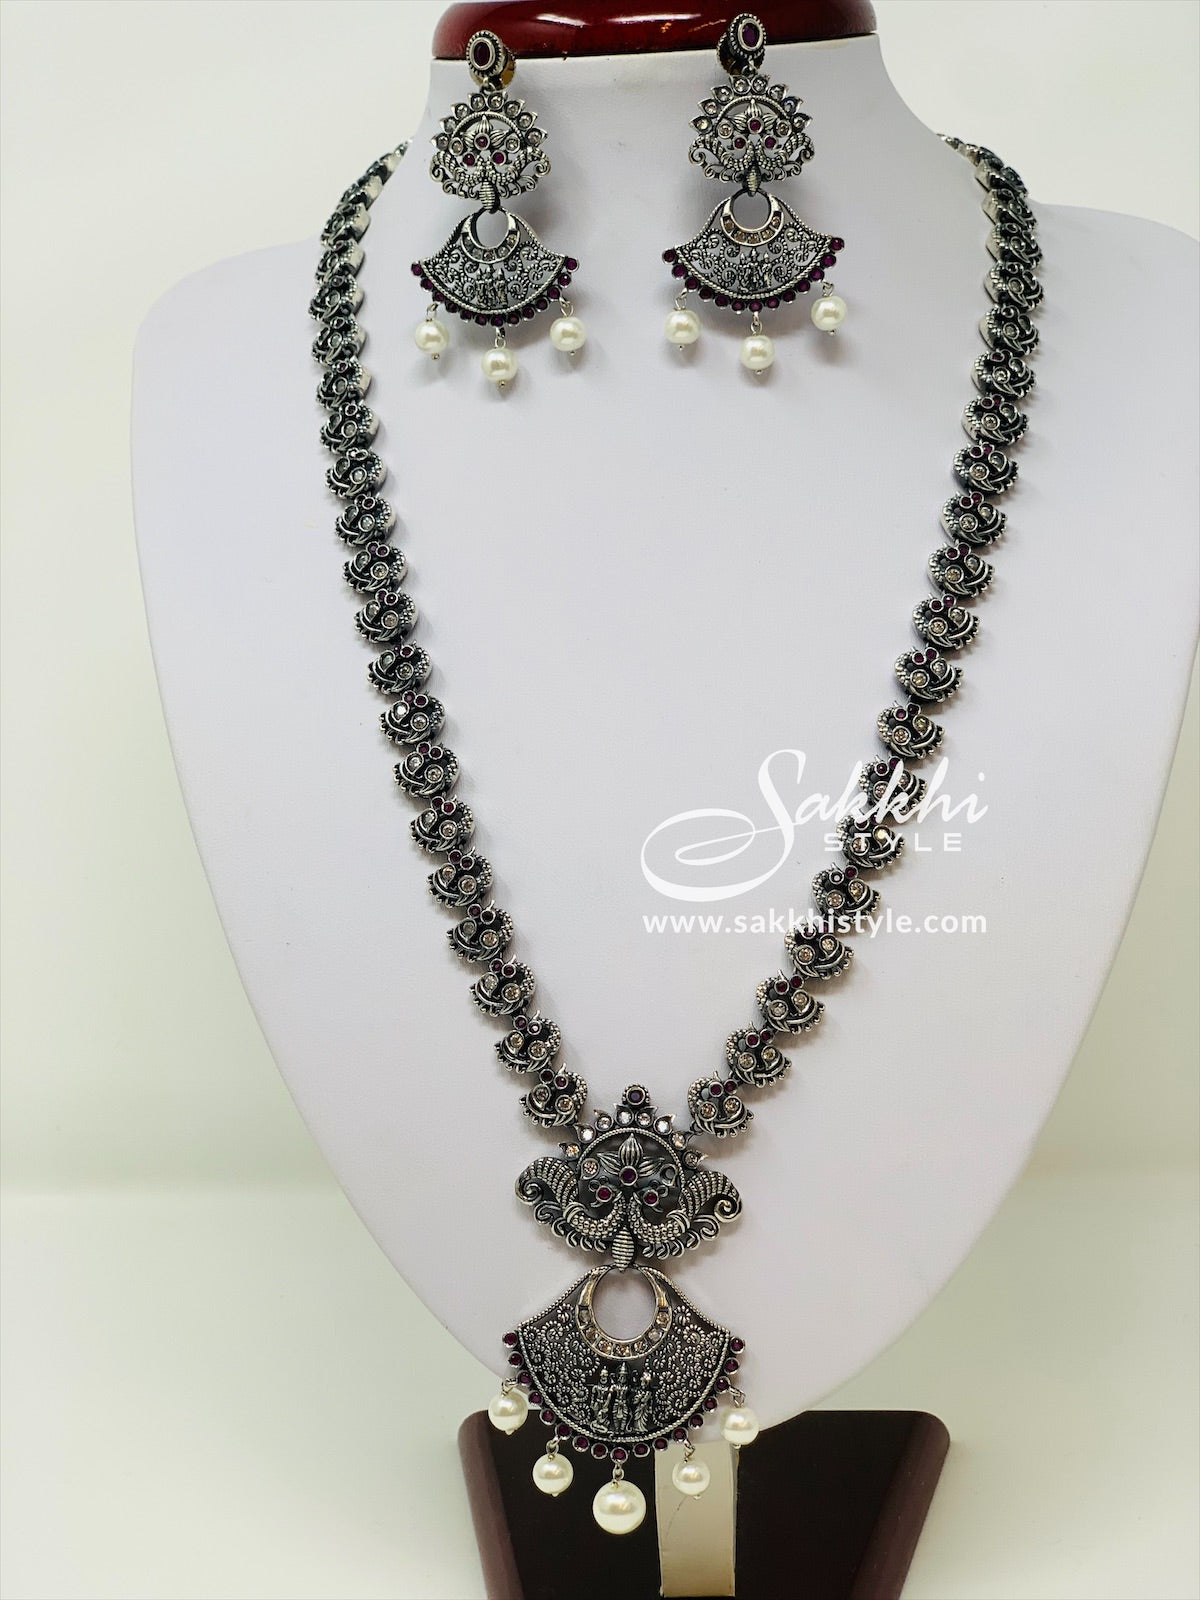 Oxidized Silver Necklace with Ram Parivar Pendant